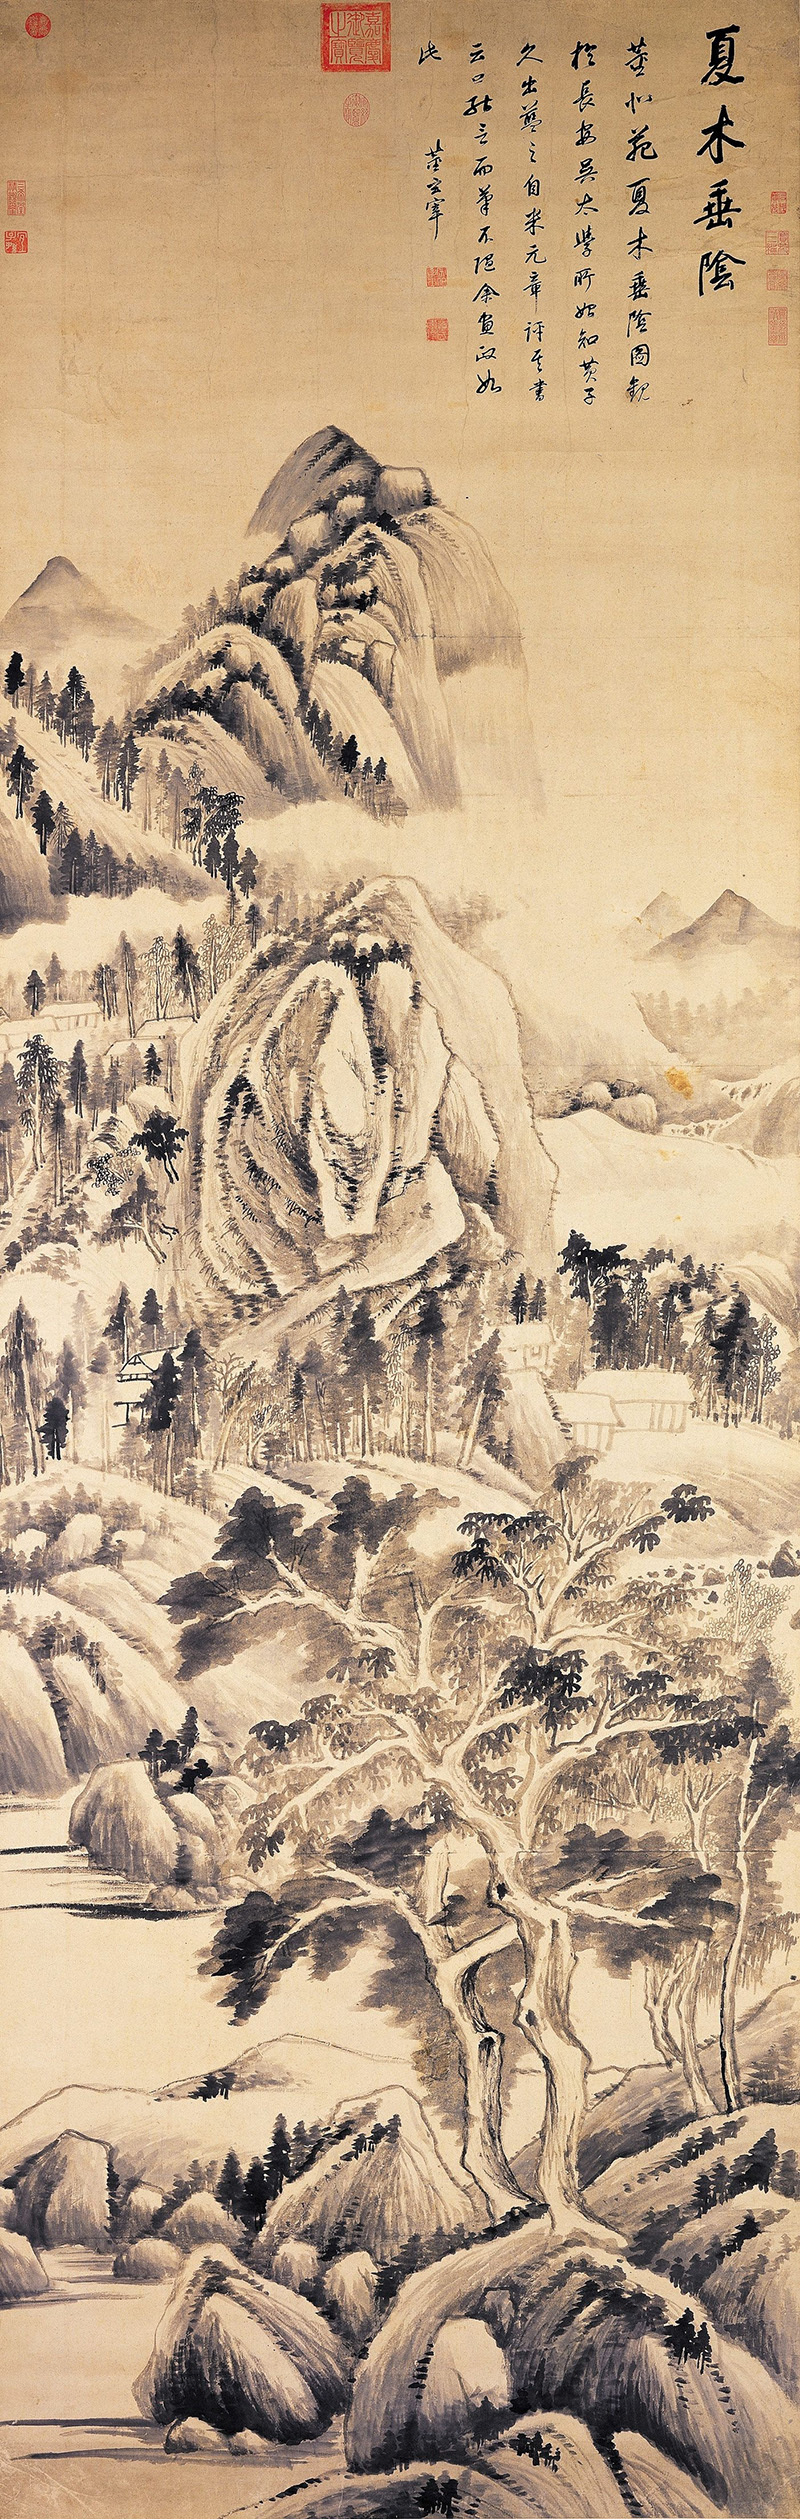 dong-qichang_shady-trees-in-a-summer-landscape